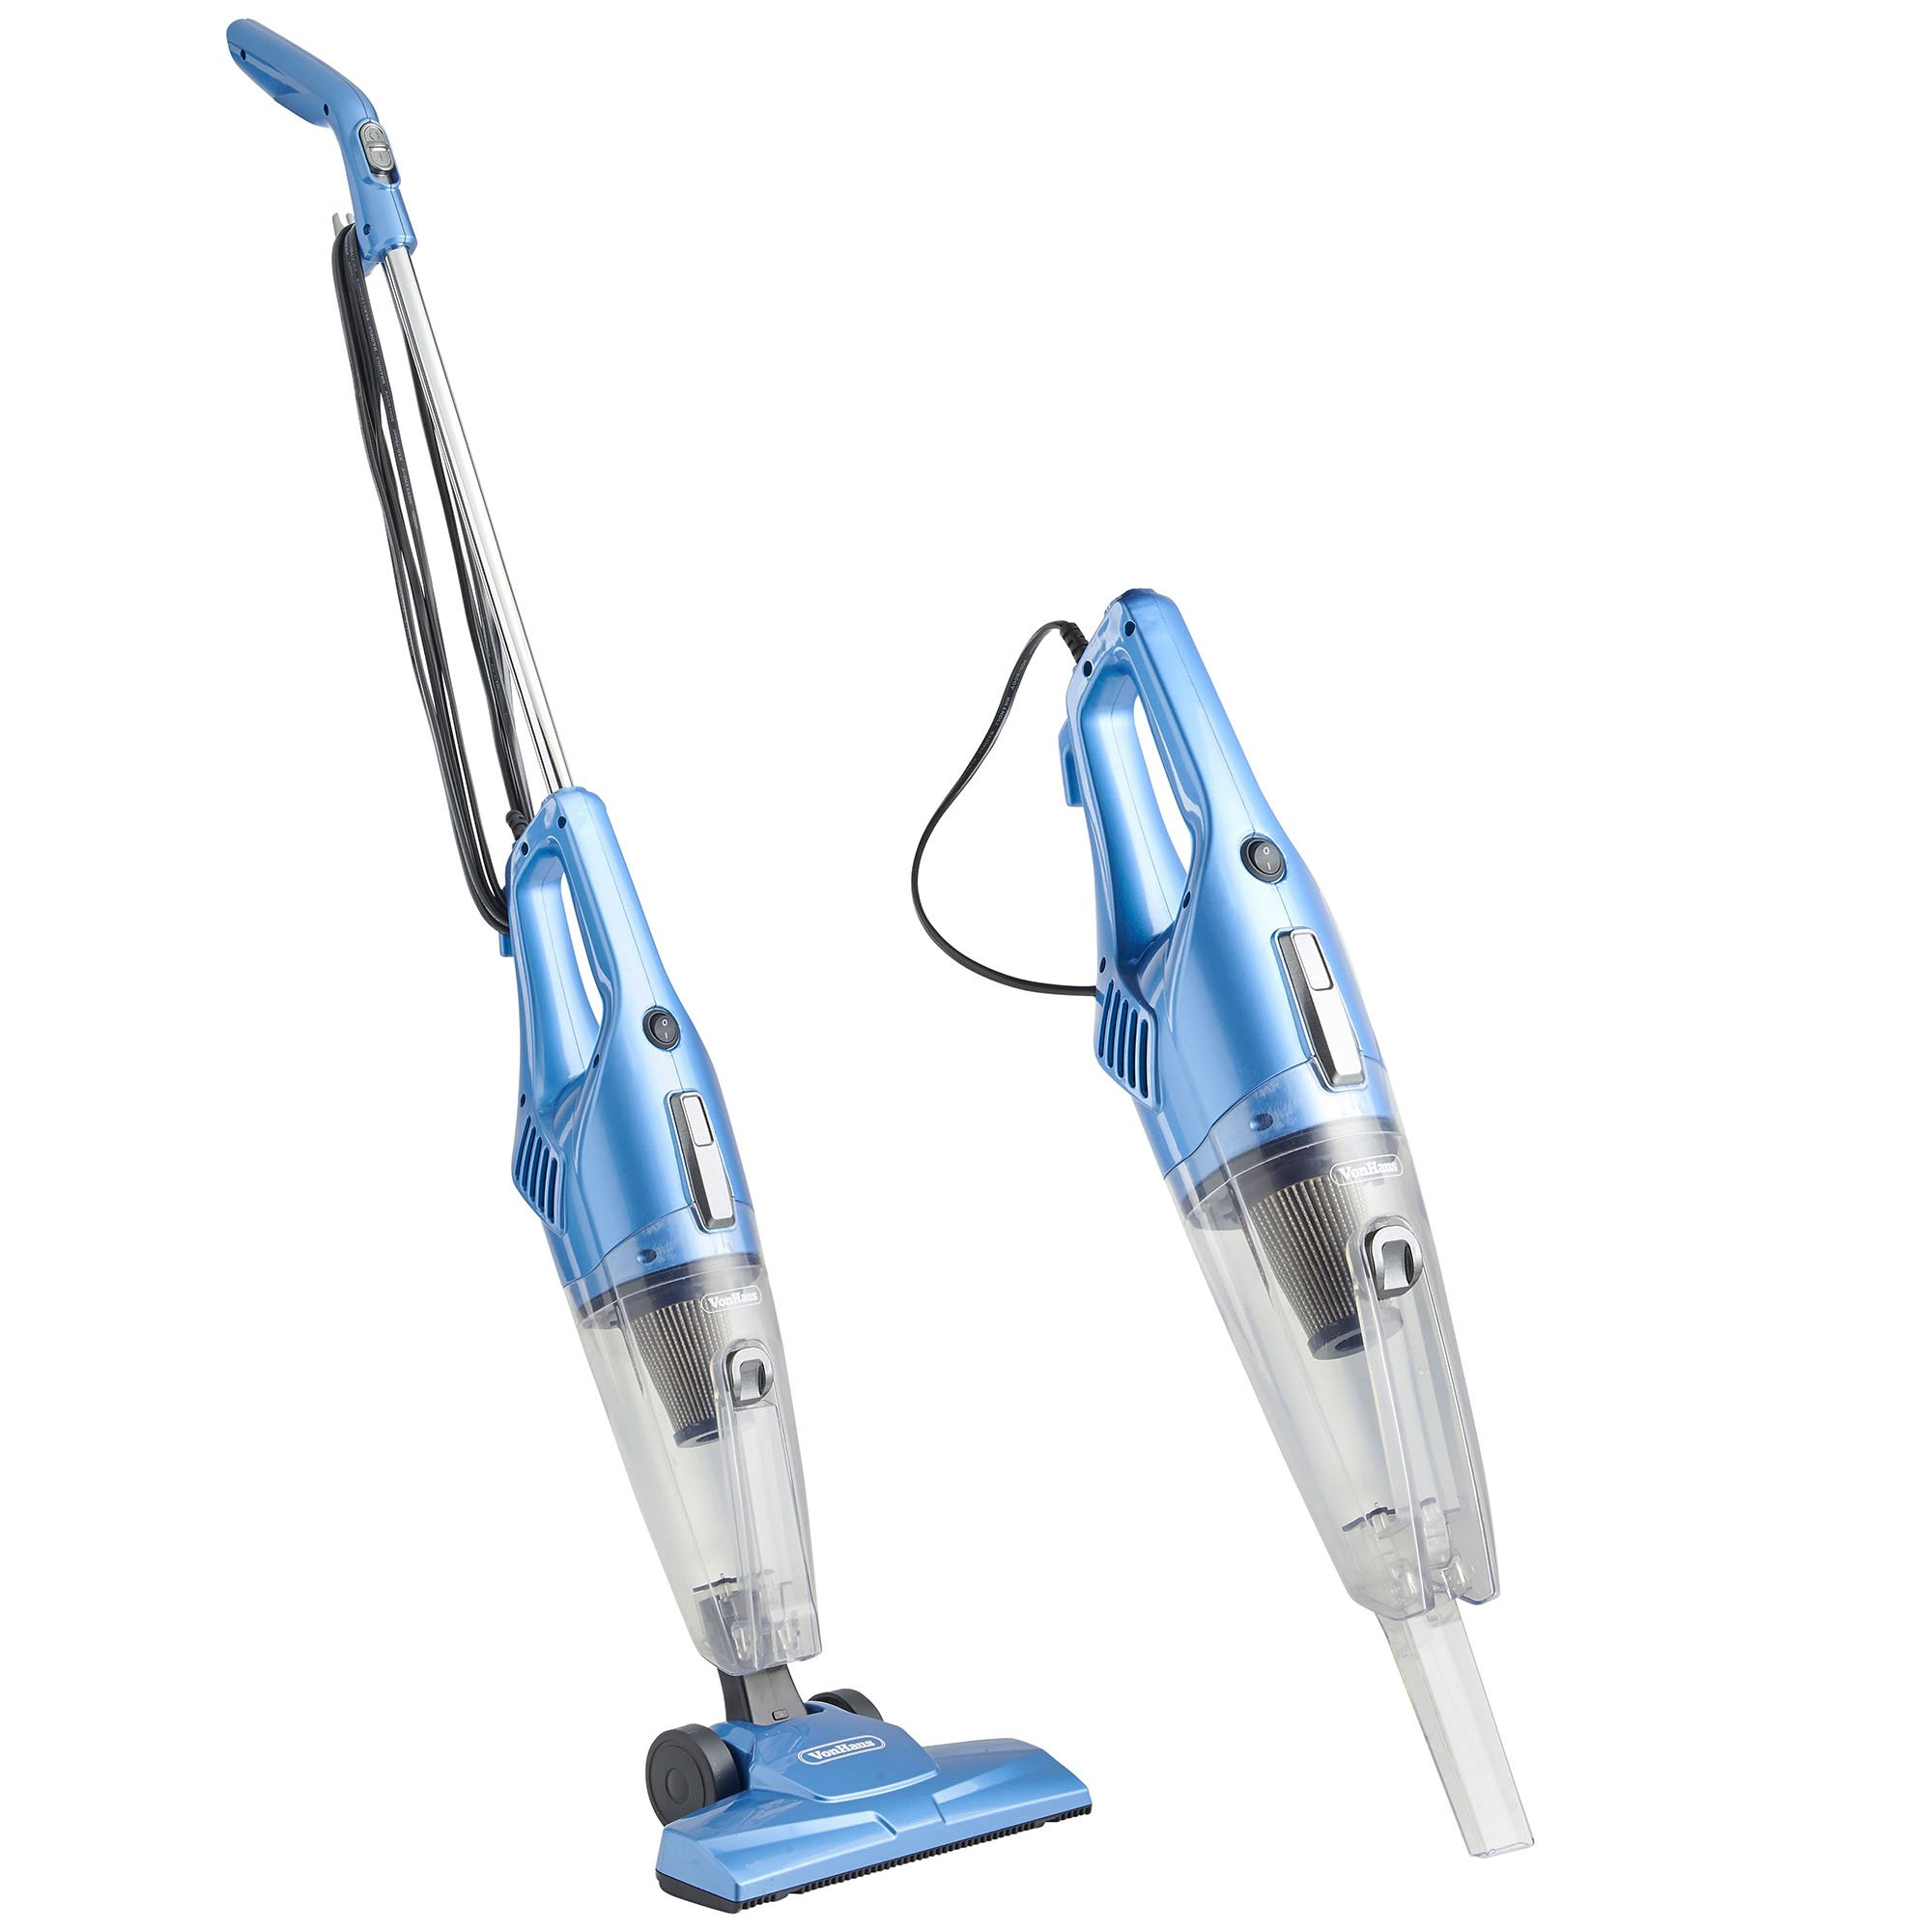 VonHaus 2 in 1 Corded Upright Stick & Handheld Vacuum Cleaner with HEPA Filtration & Crevice Tool - Blue